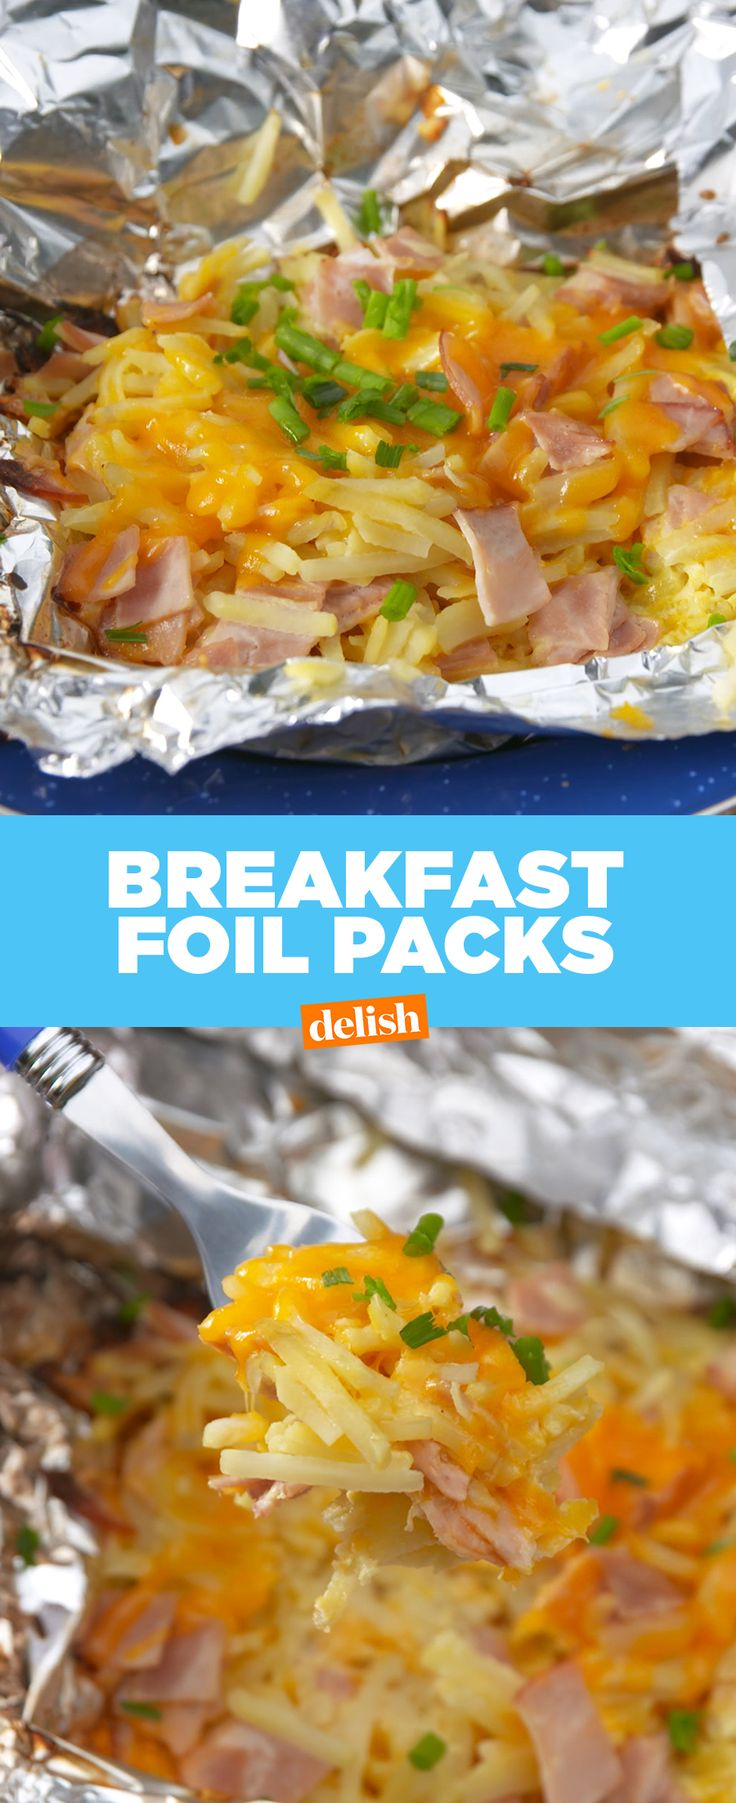 Breakfast Foil Packs Camping RecipesCampfire Meals